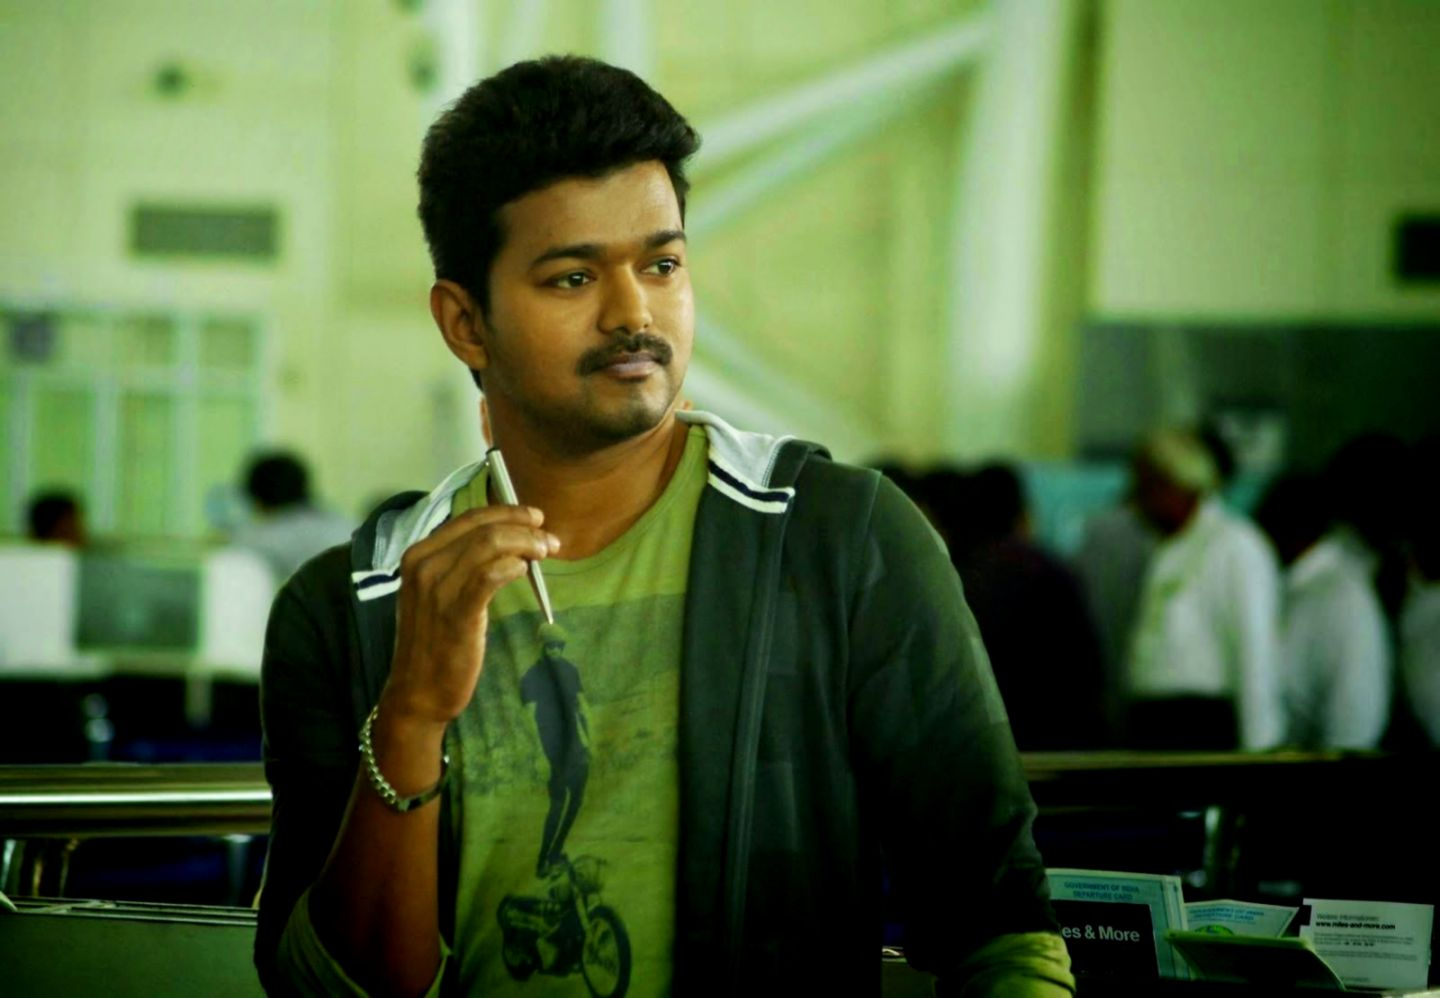 Actor Vijay Hd Desktop Wallpapers Find Wallpapers